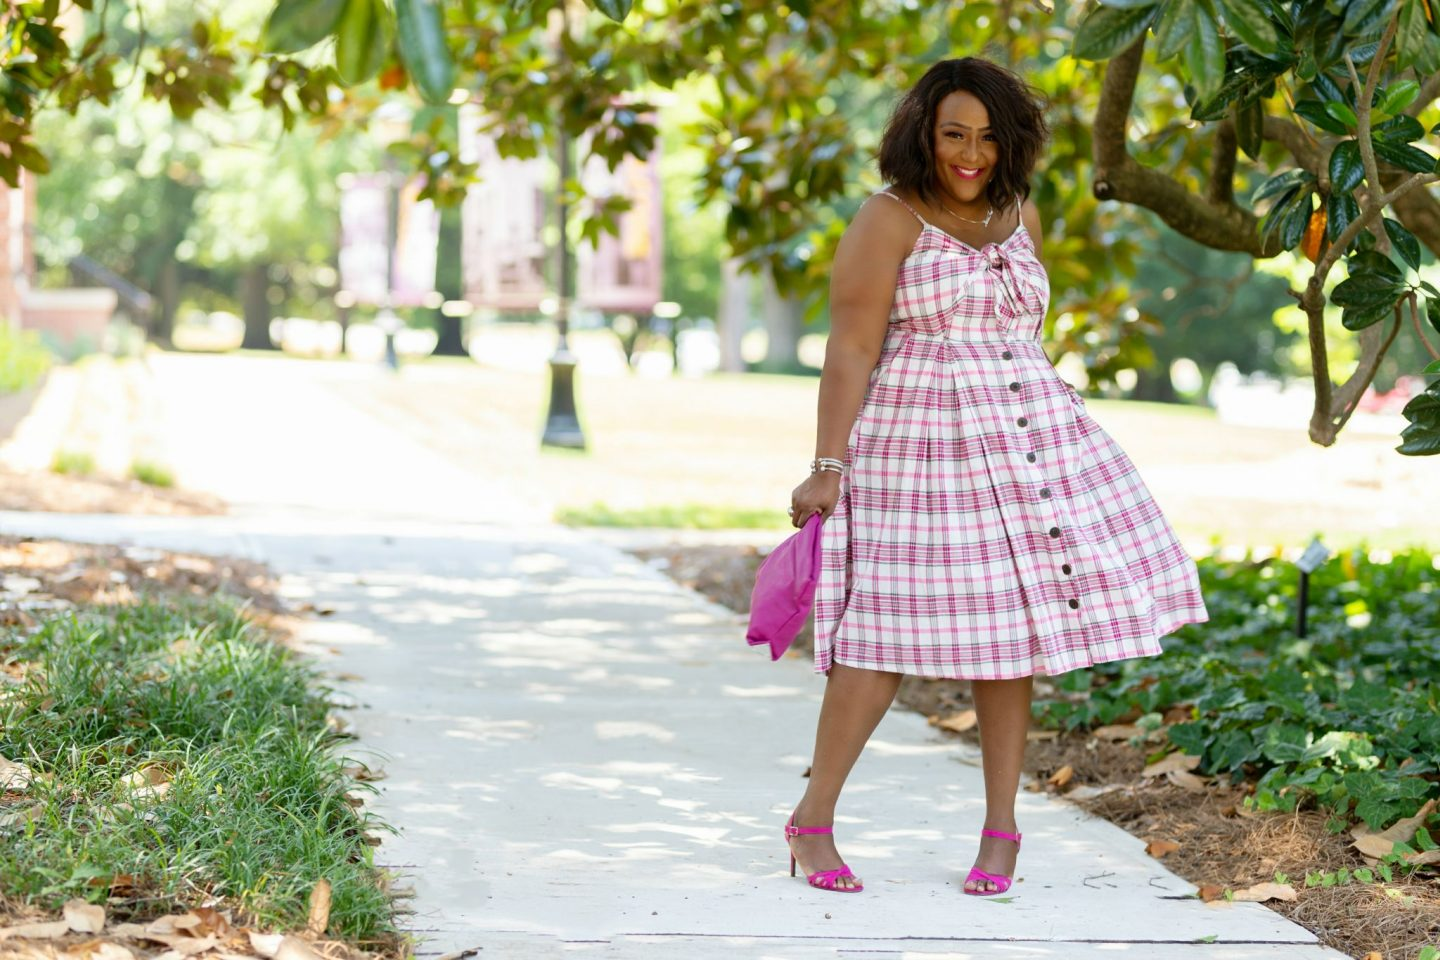 Influencer Nikki Free posing in a plaid sundress standing under a magnolia tree